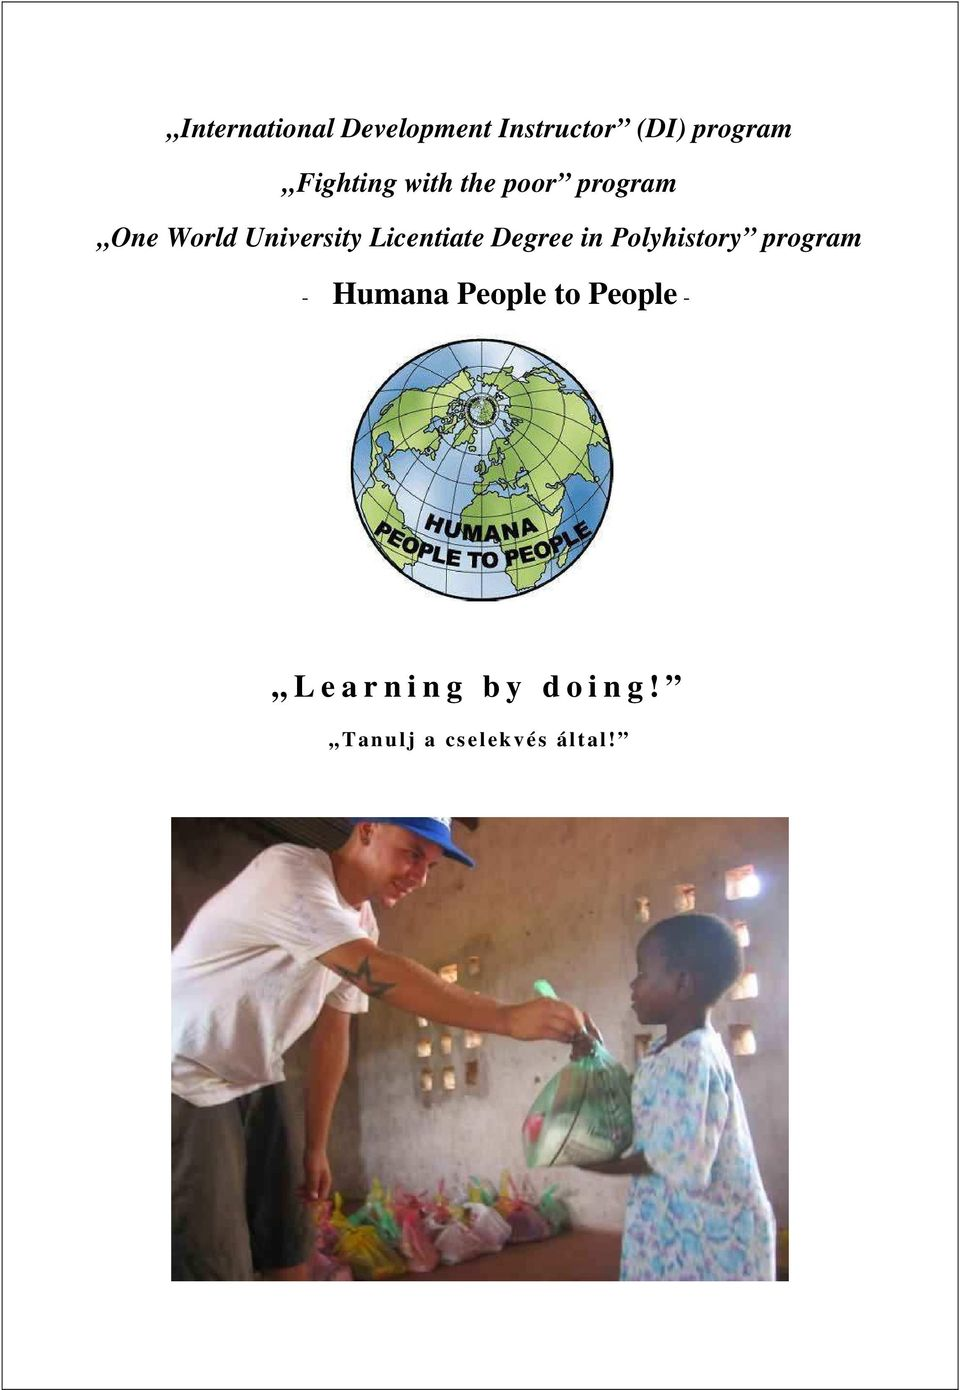 Licentiate Degree in Polyhistory program - Humana People